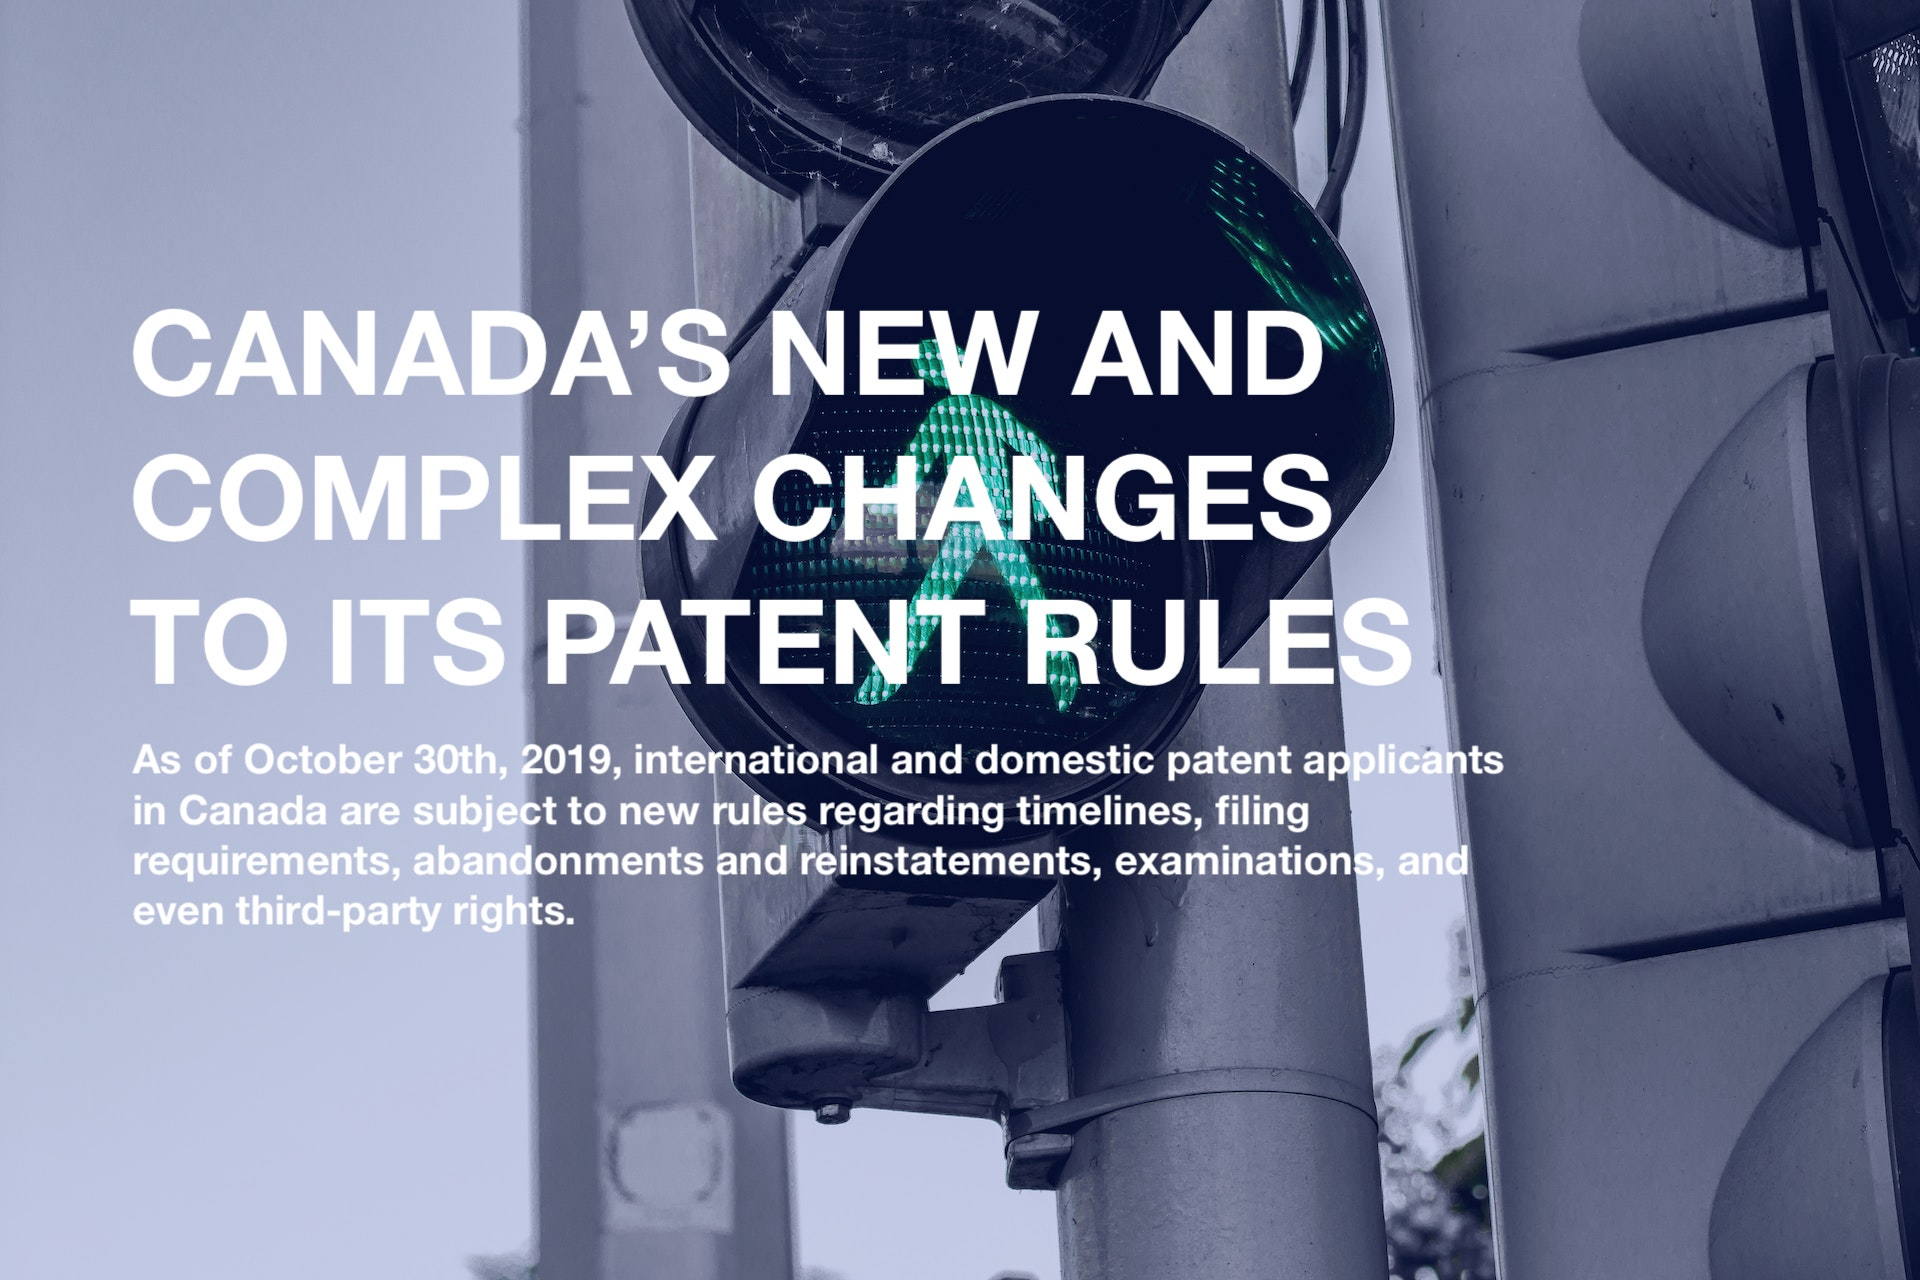 Canada's new complex patent filing rules